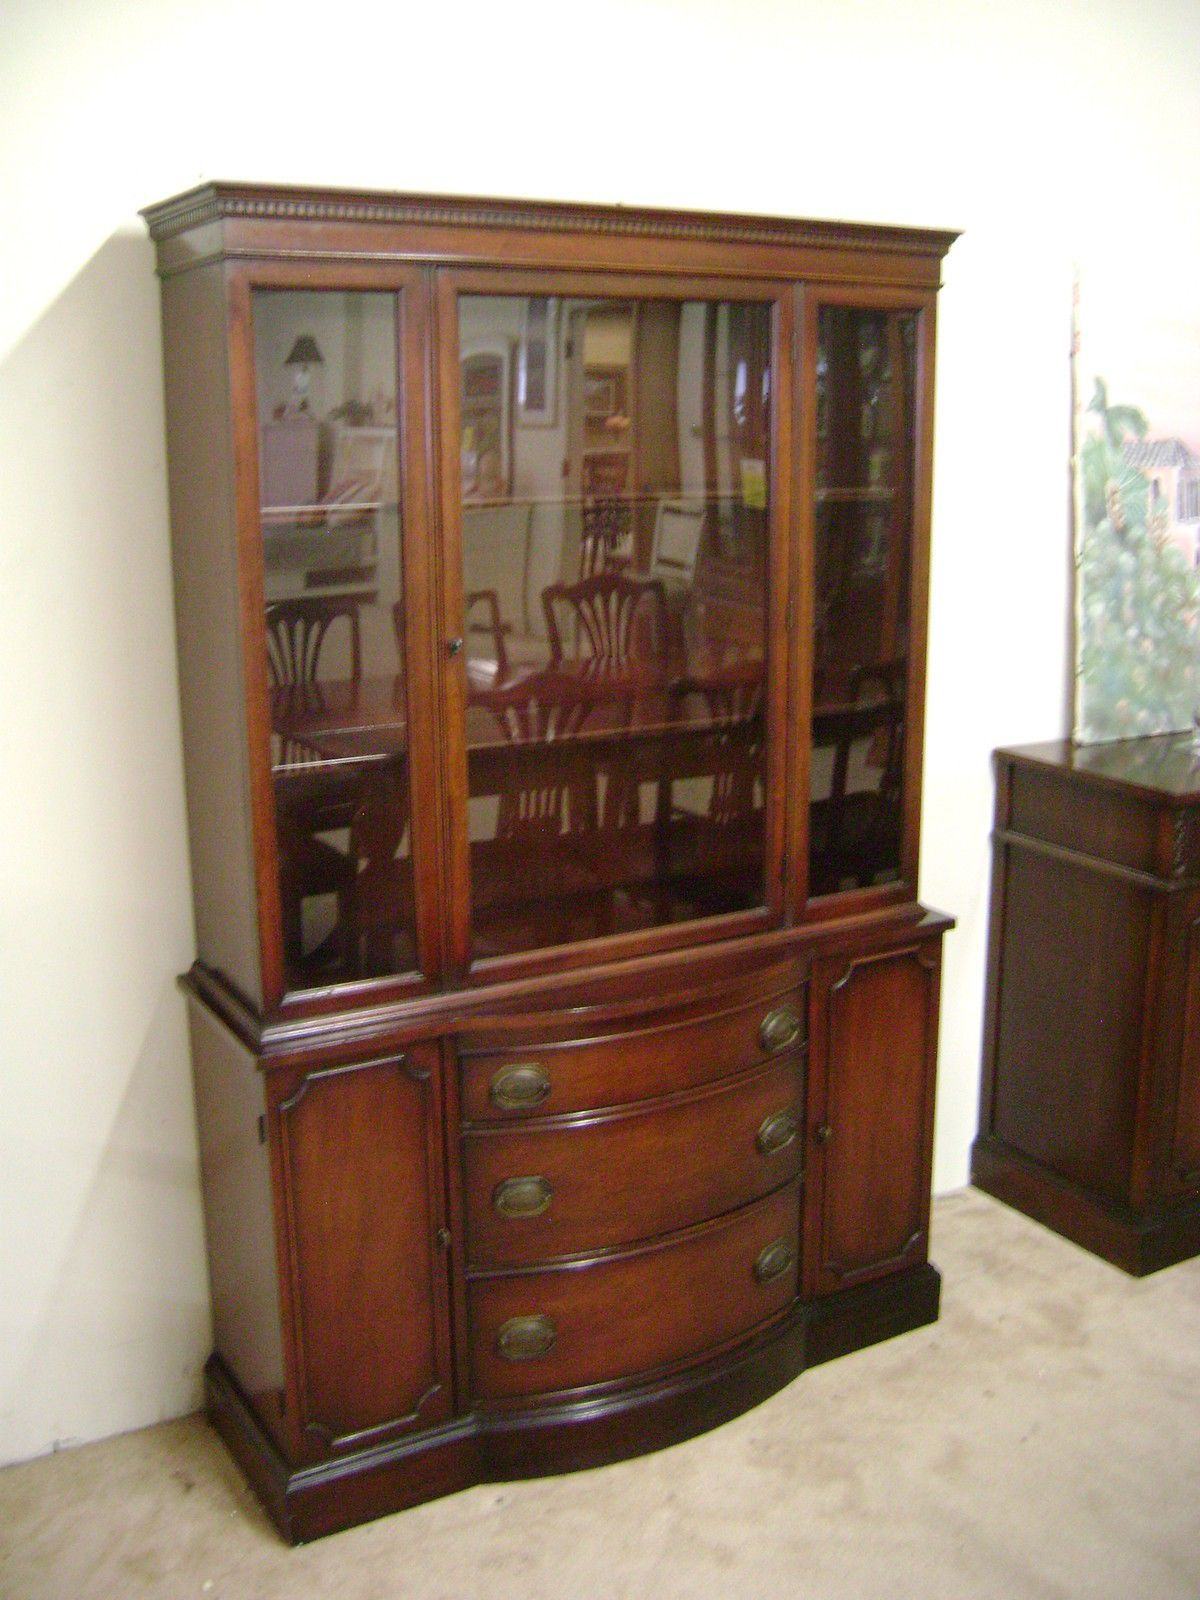 JB Van Sciver Co Collectors China Cabinet 1940s No 515 Lot 42